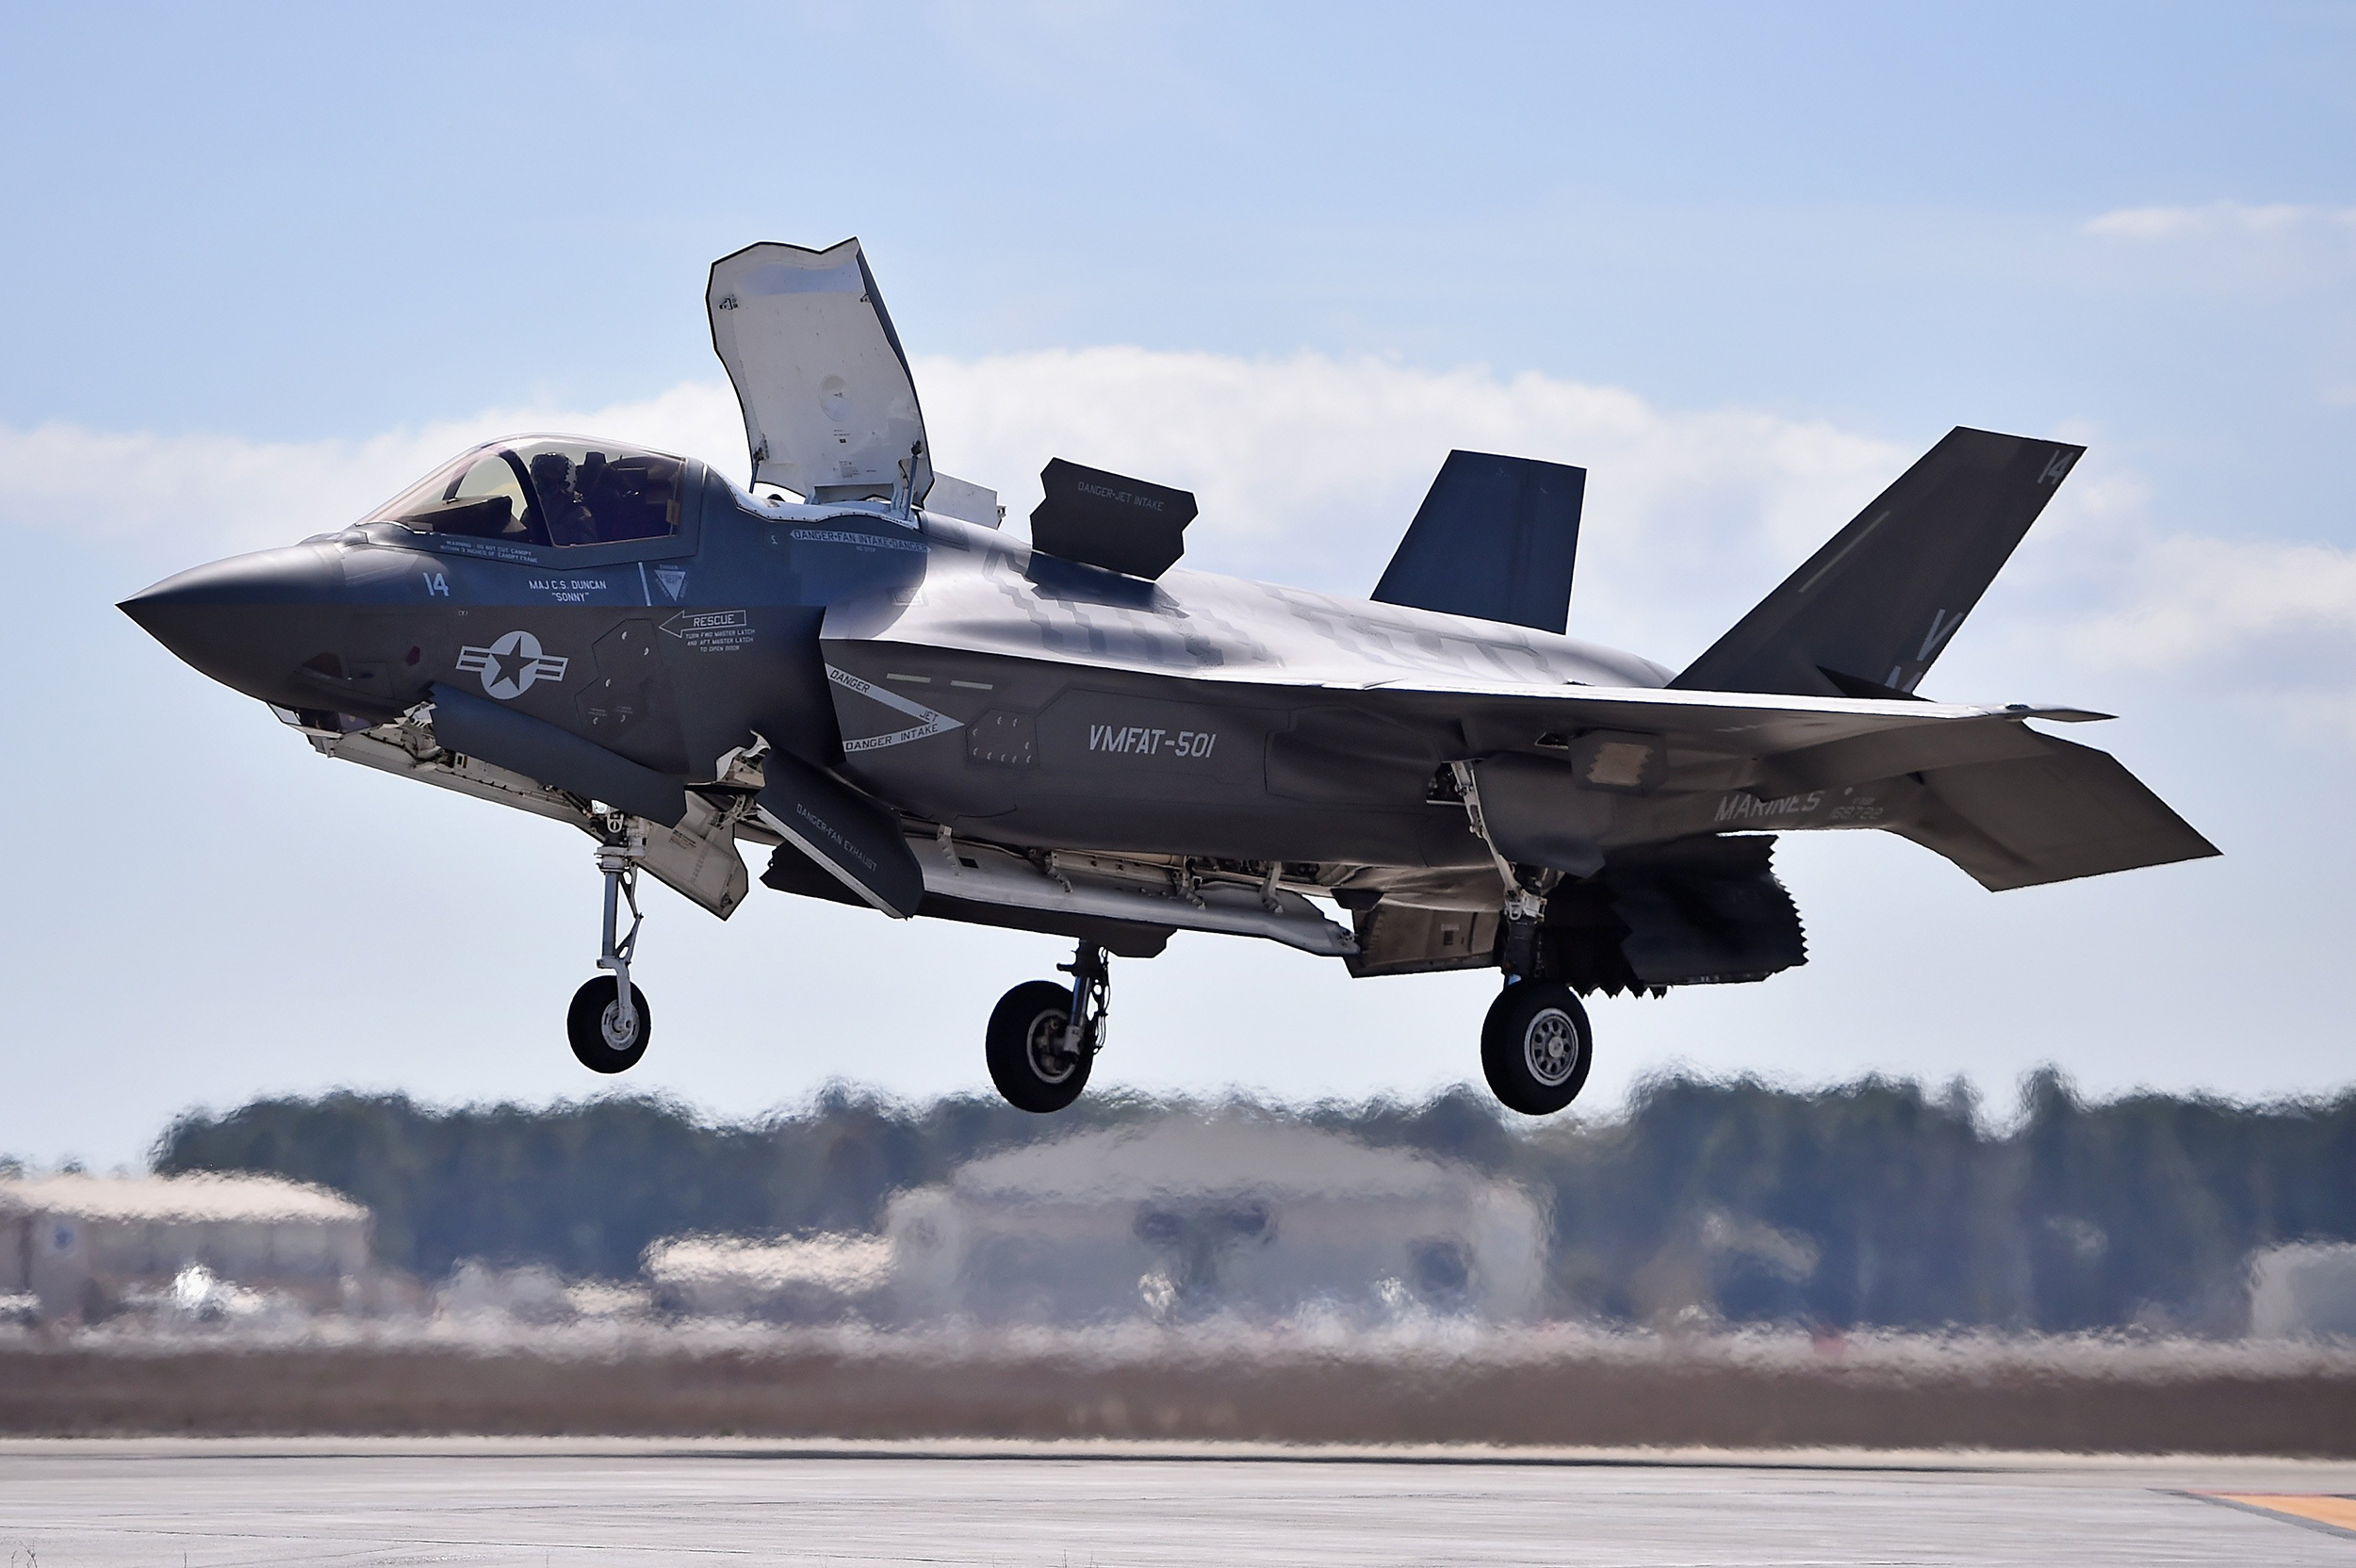 Pentagon-grounds-all-F-35-jets-following-crash-—-latest-issue-for-costly-program